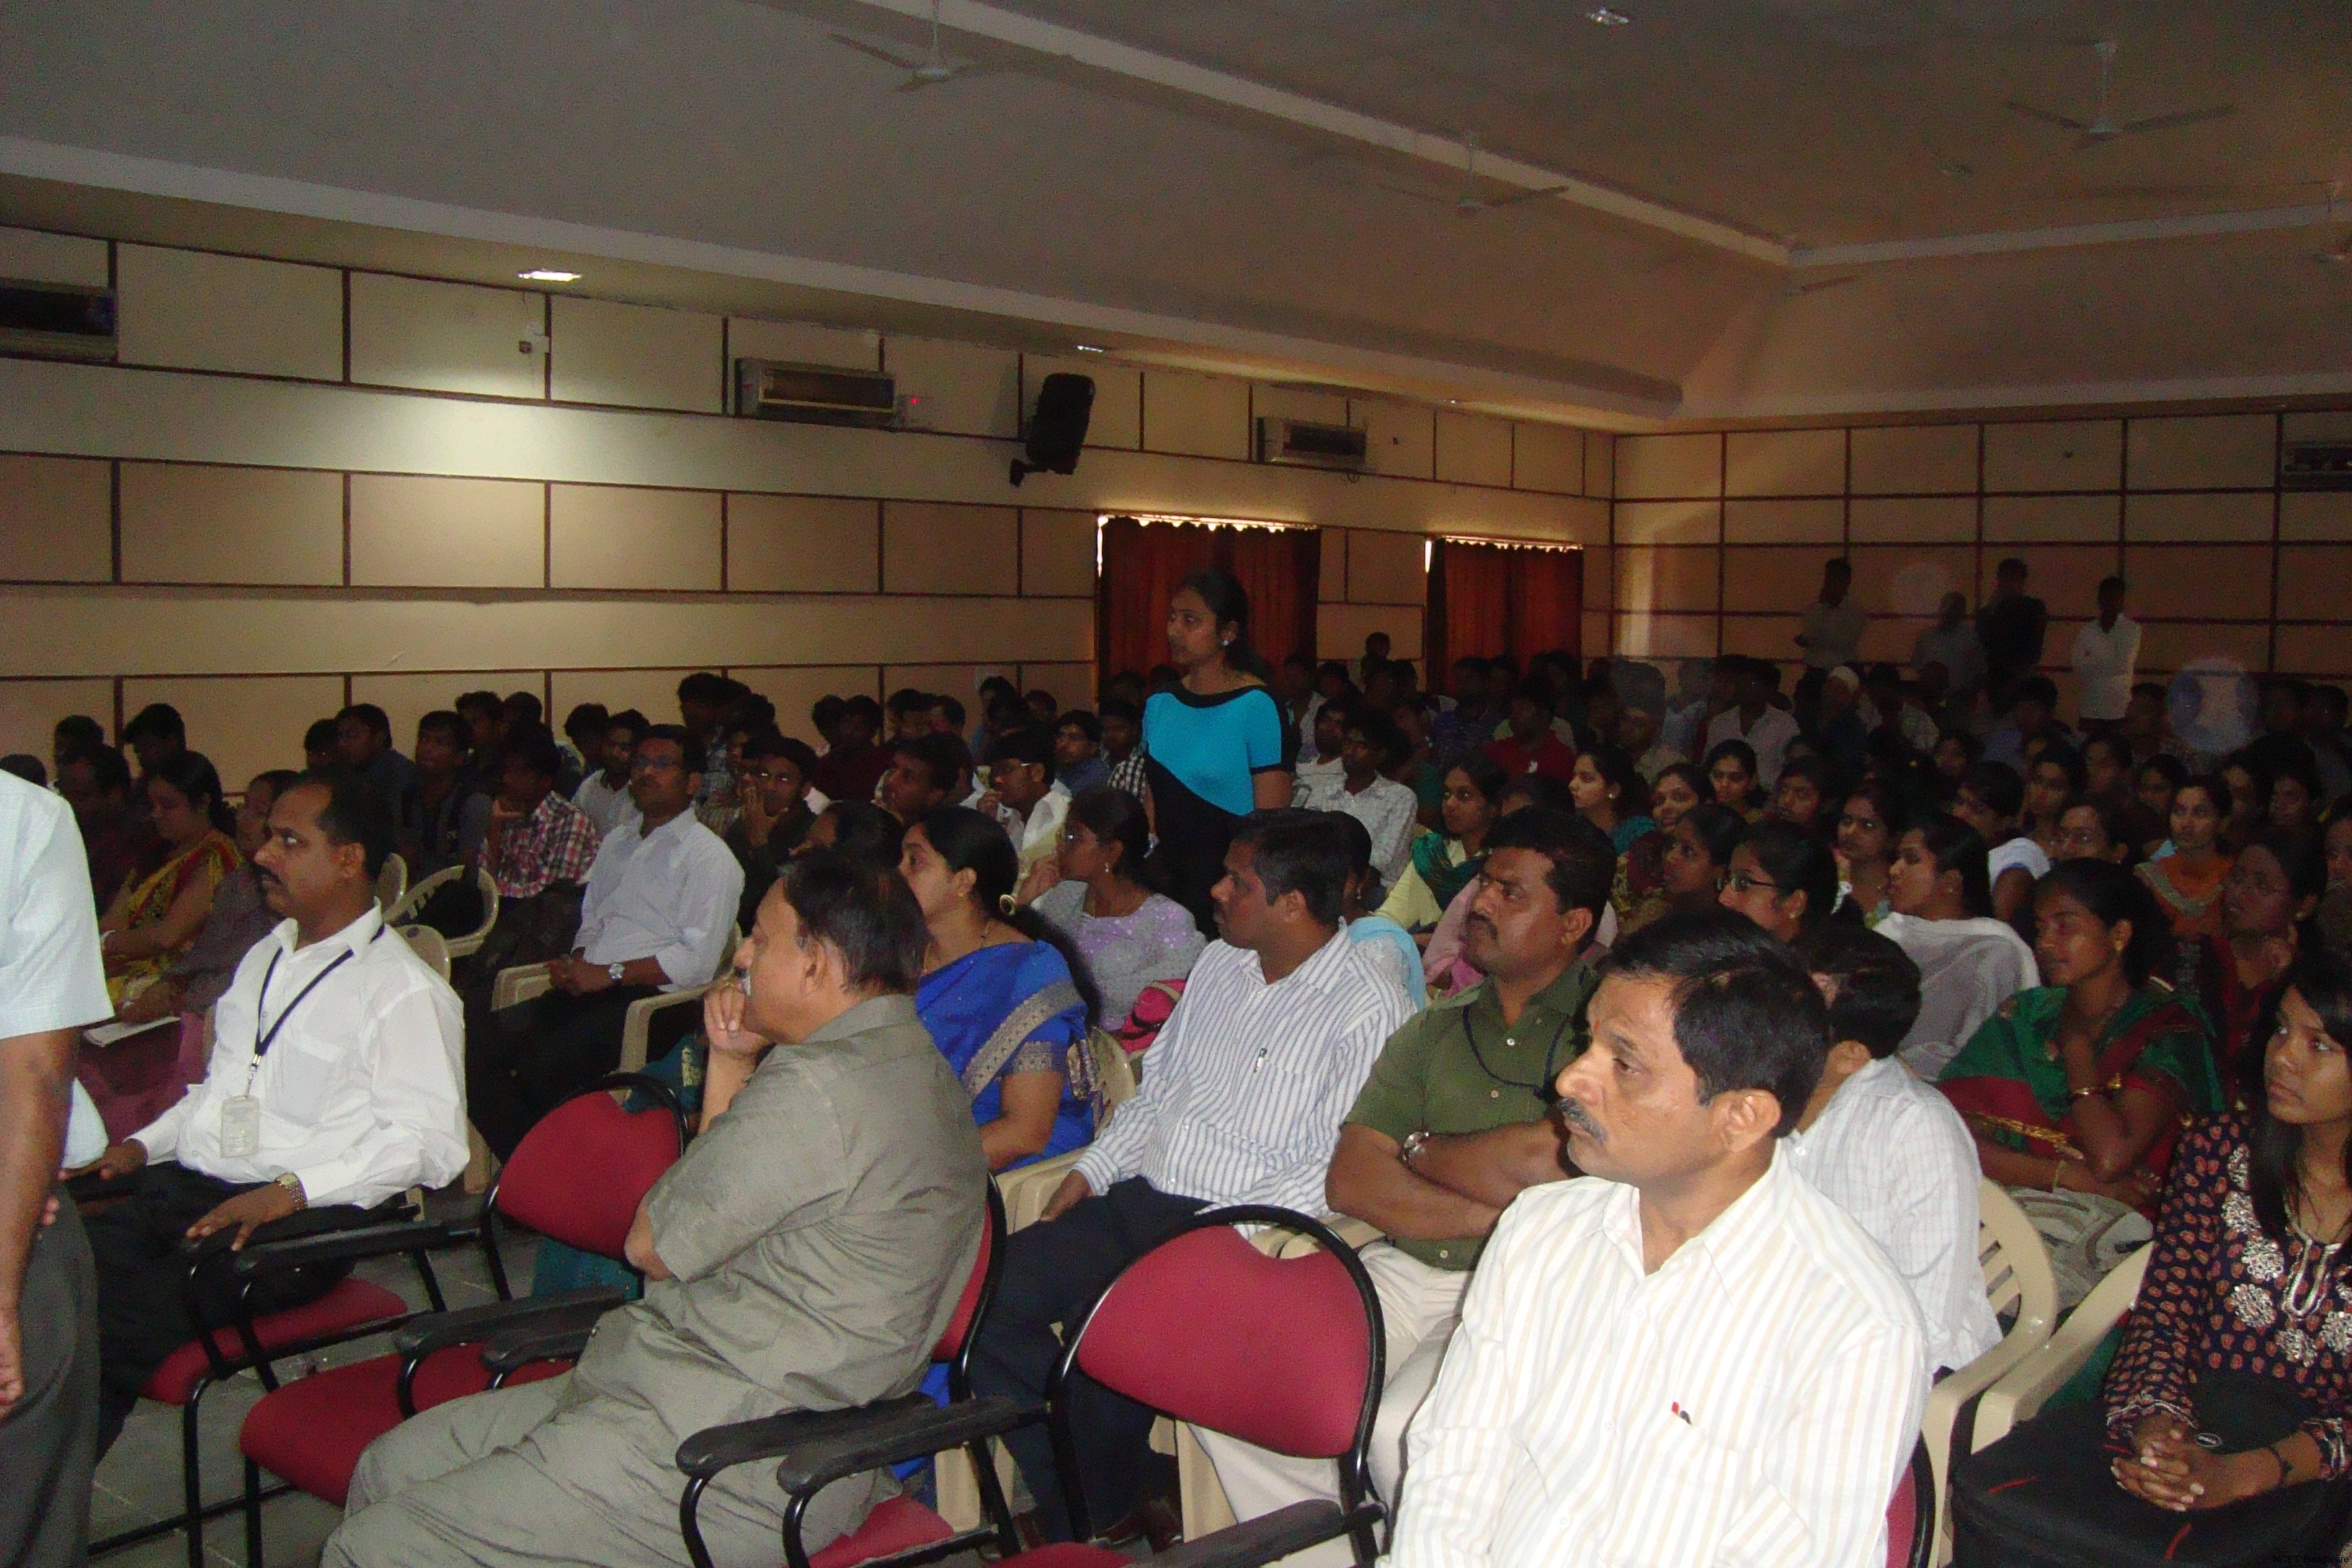 resume building services in bangalore dating smak produktion